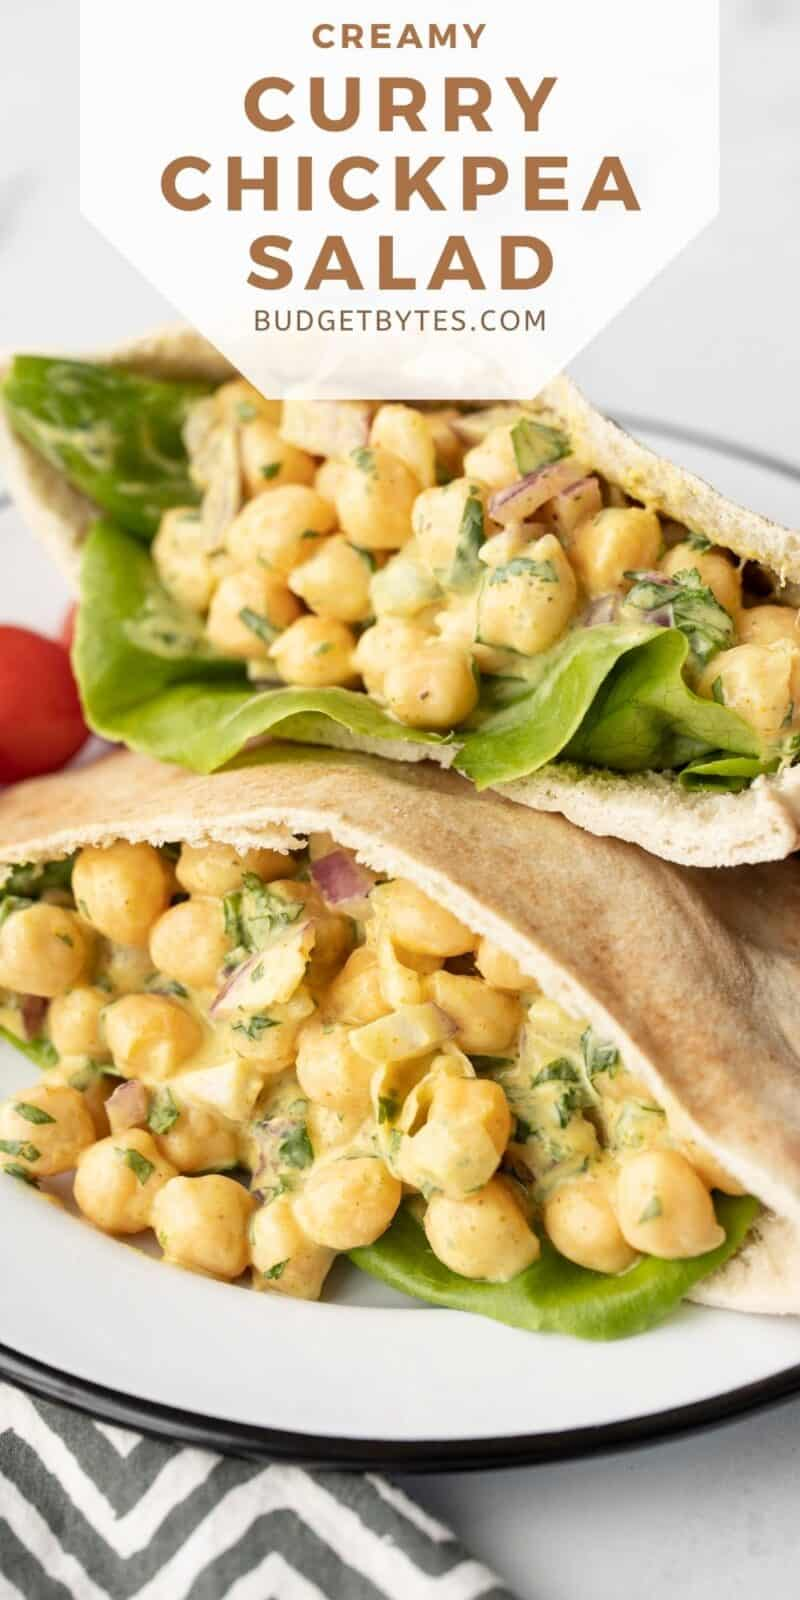 Curry chickpea salad in two pita pockets, title text at the top